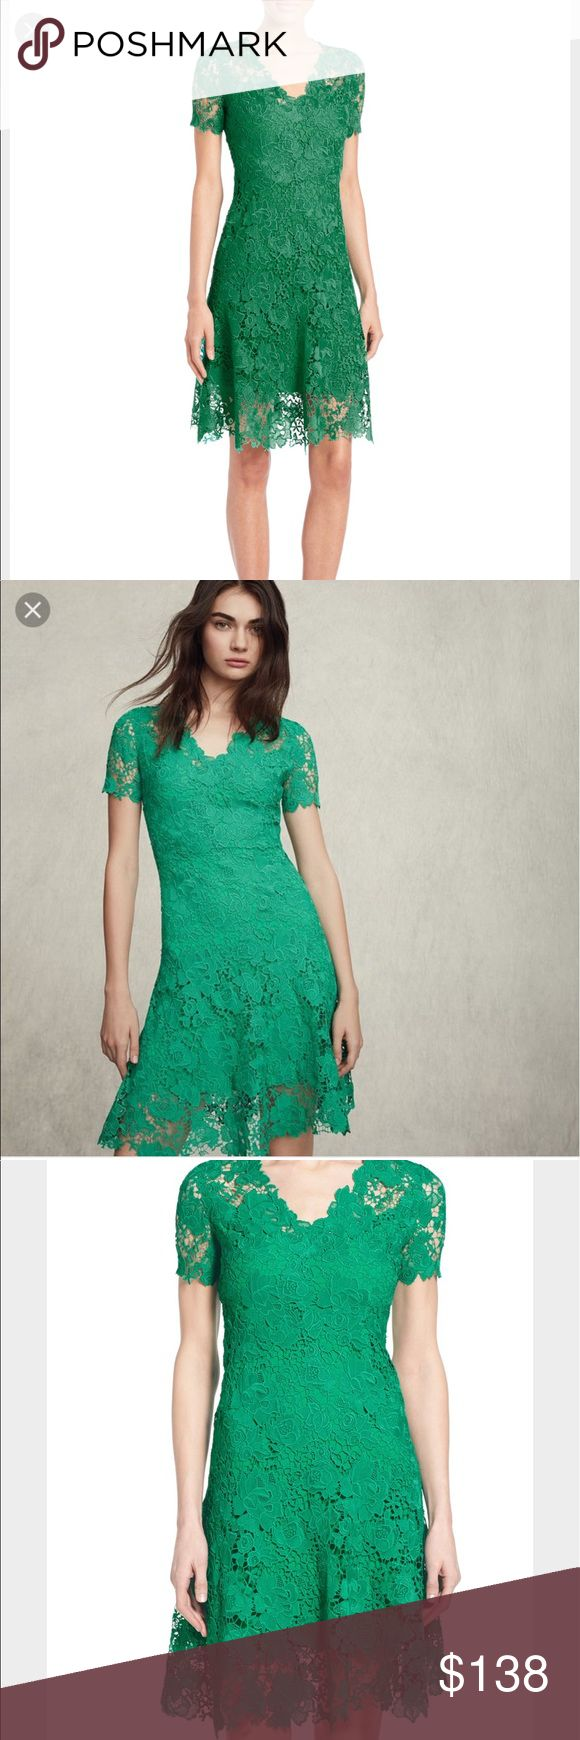 "NWT Elie Tahari green lace dress NWT bust 33""waist 28""length 34"" Elie Tahari Dresses"